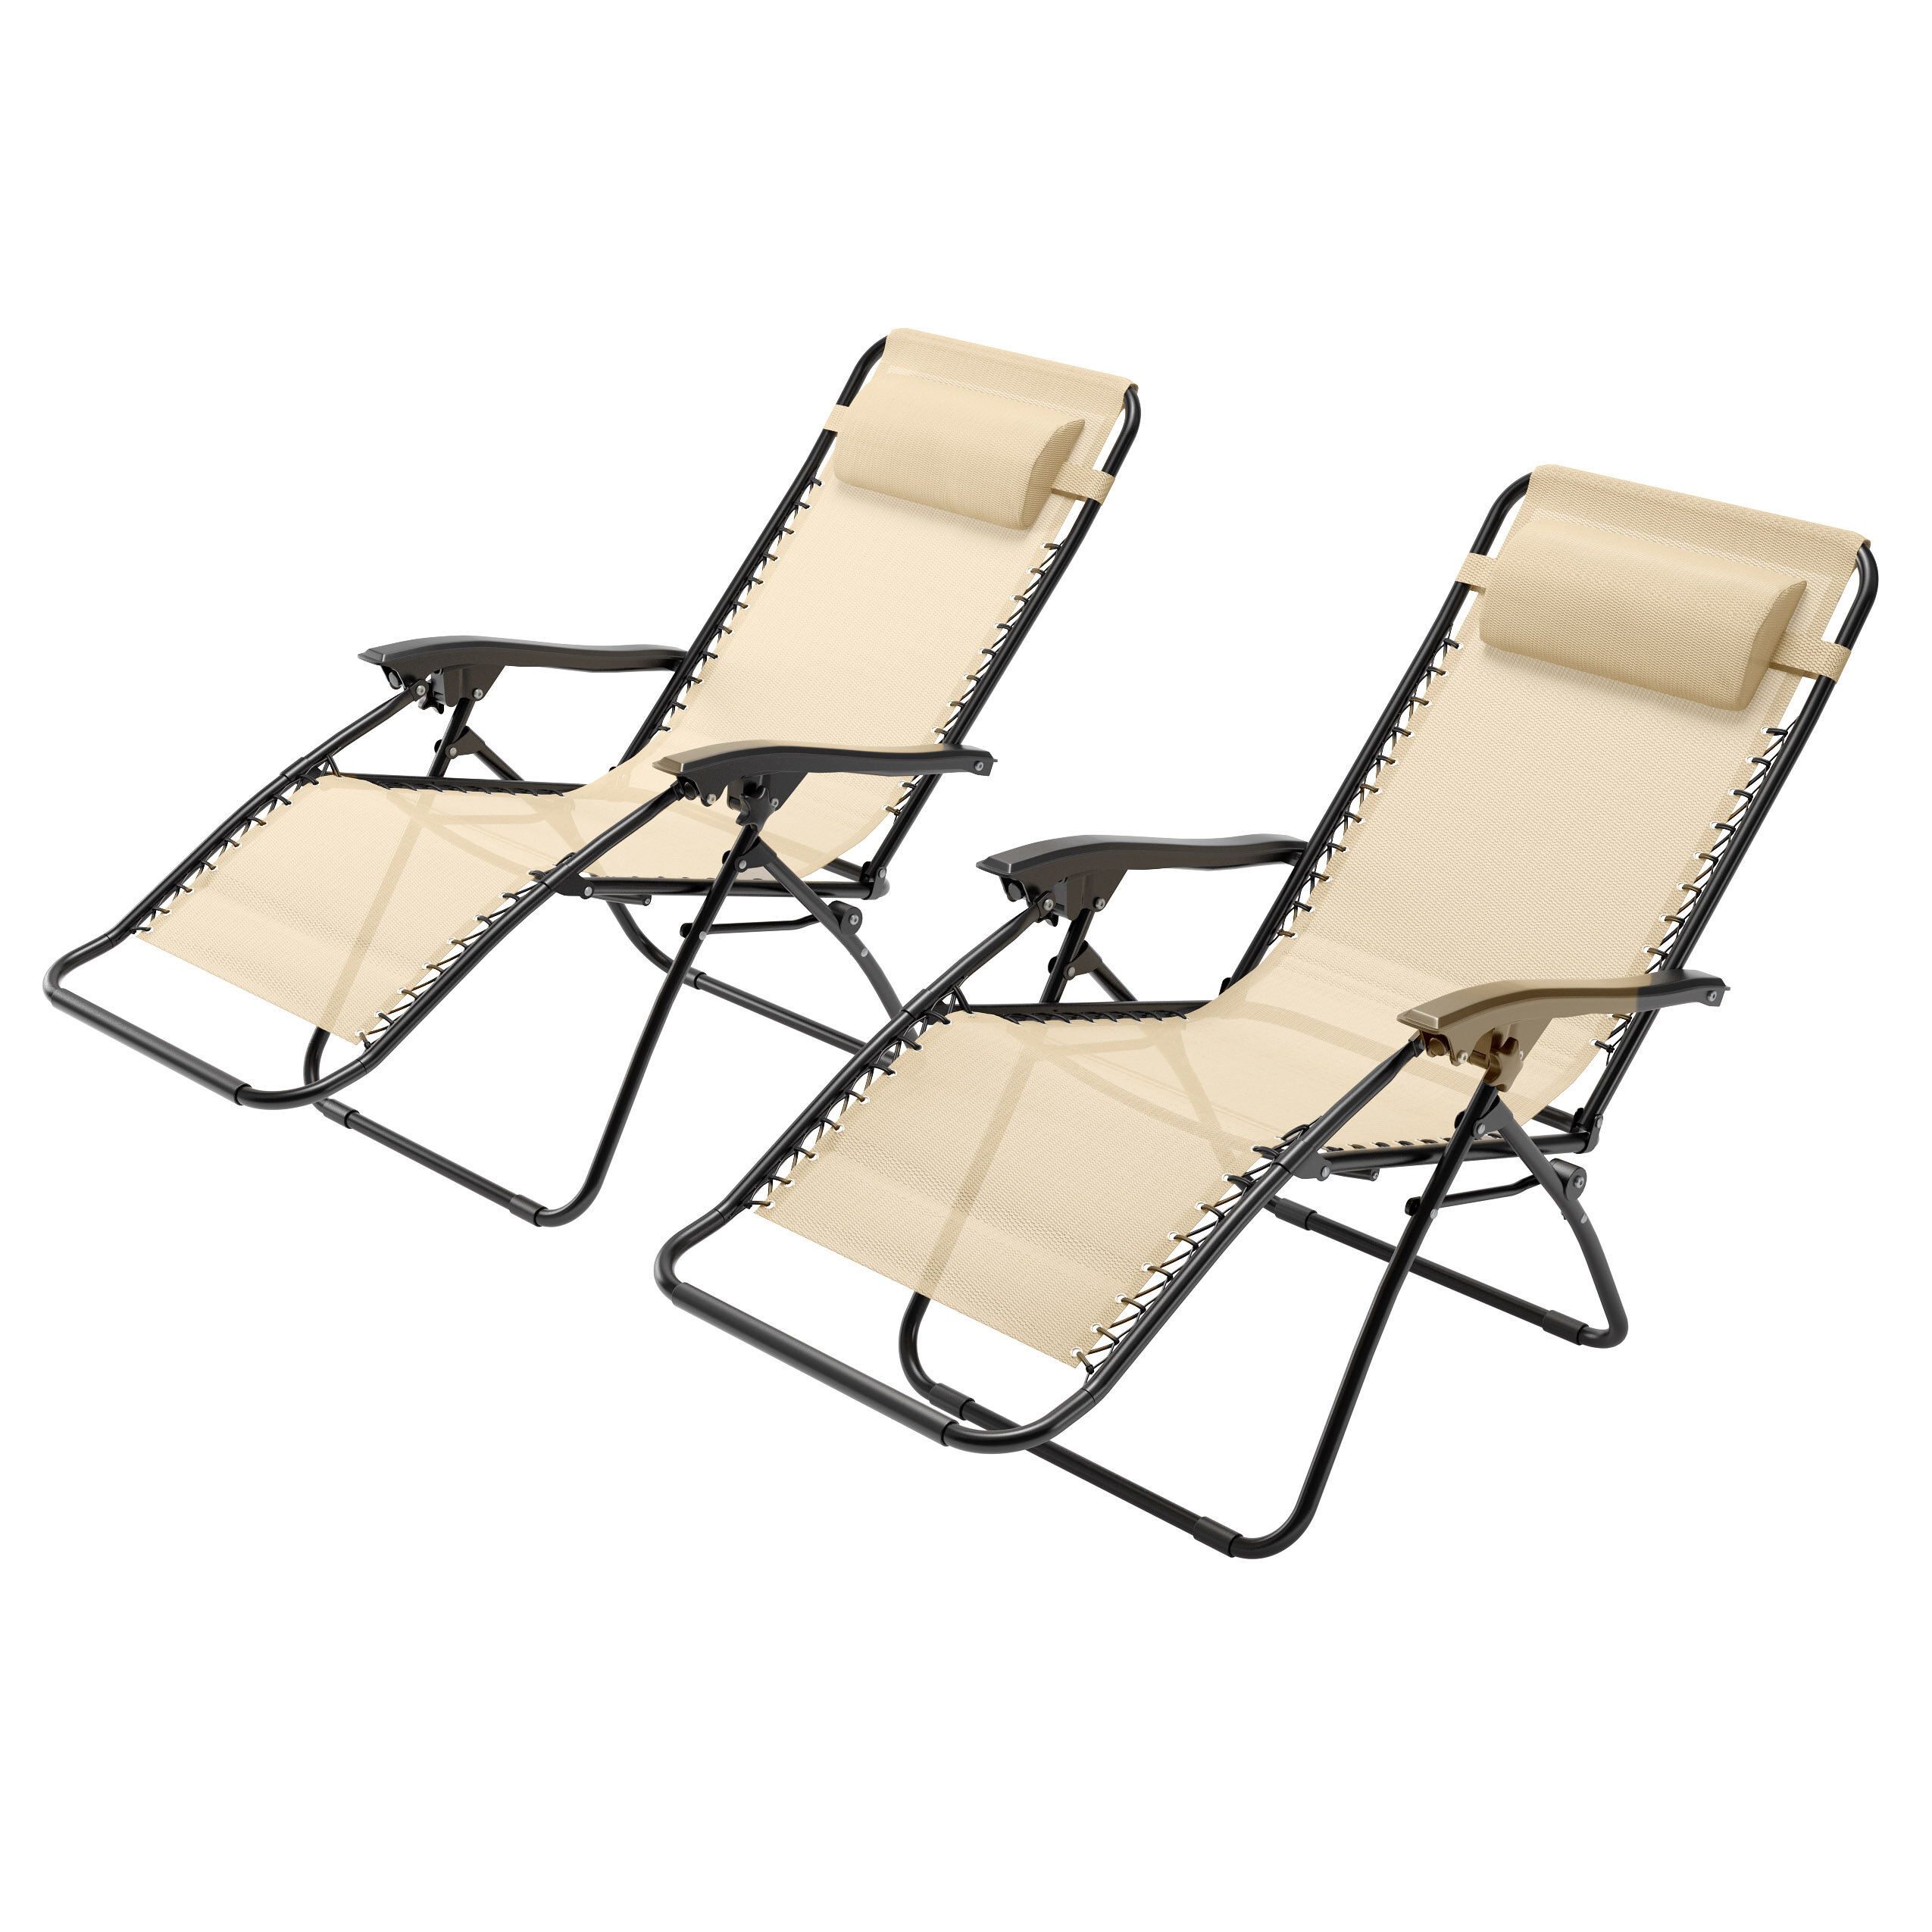 Wondrous Phina Textured Zero Gravity Reclining Sun Lounger Set With Cushions Caraccident5 Cool Chair Designs And Ideas Caraccident5Info